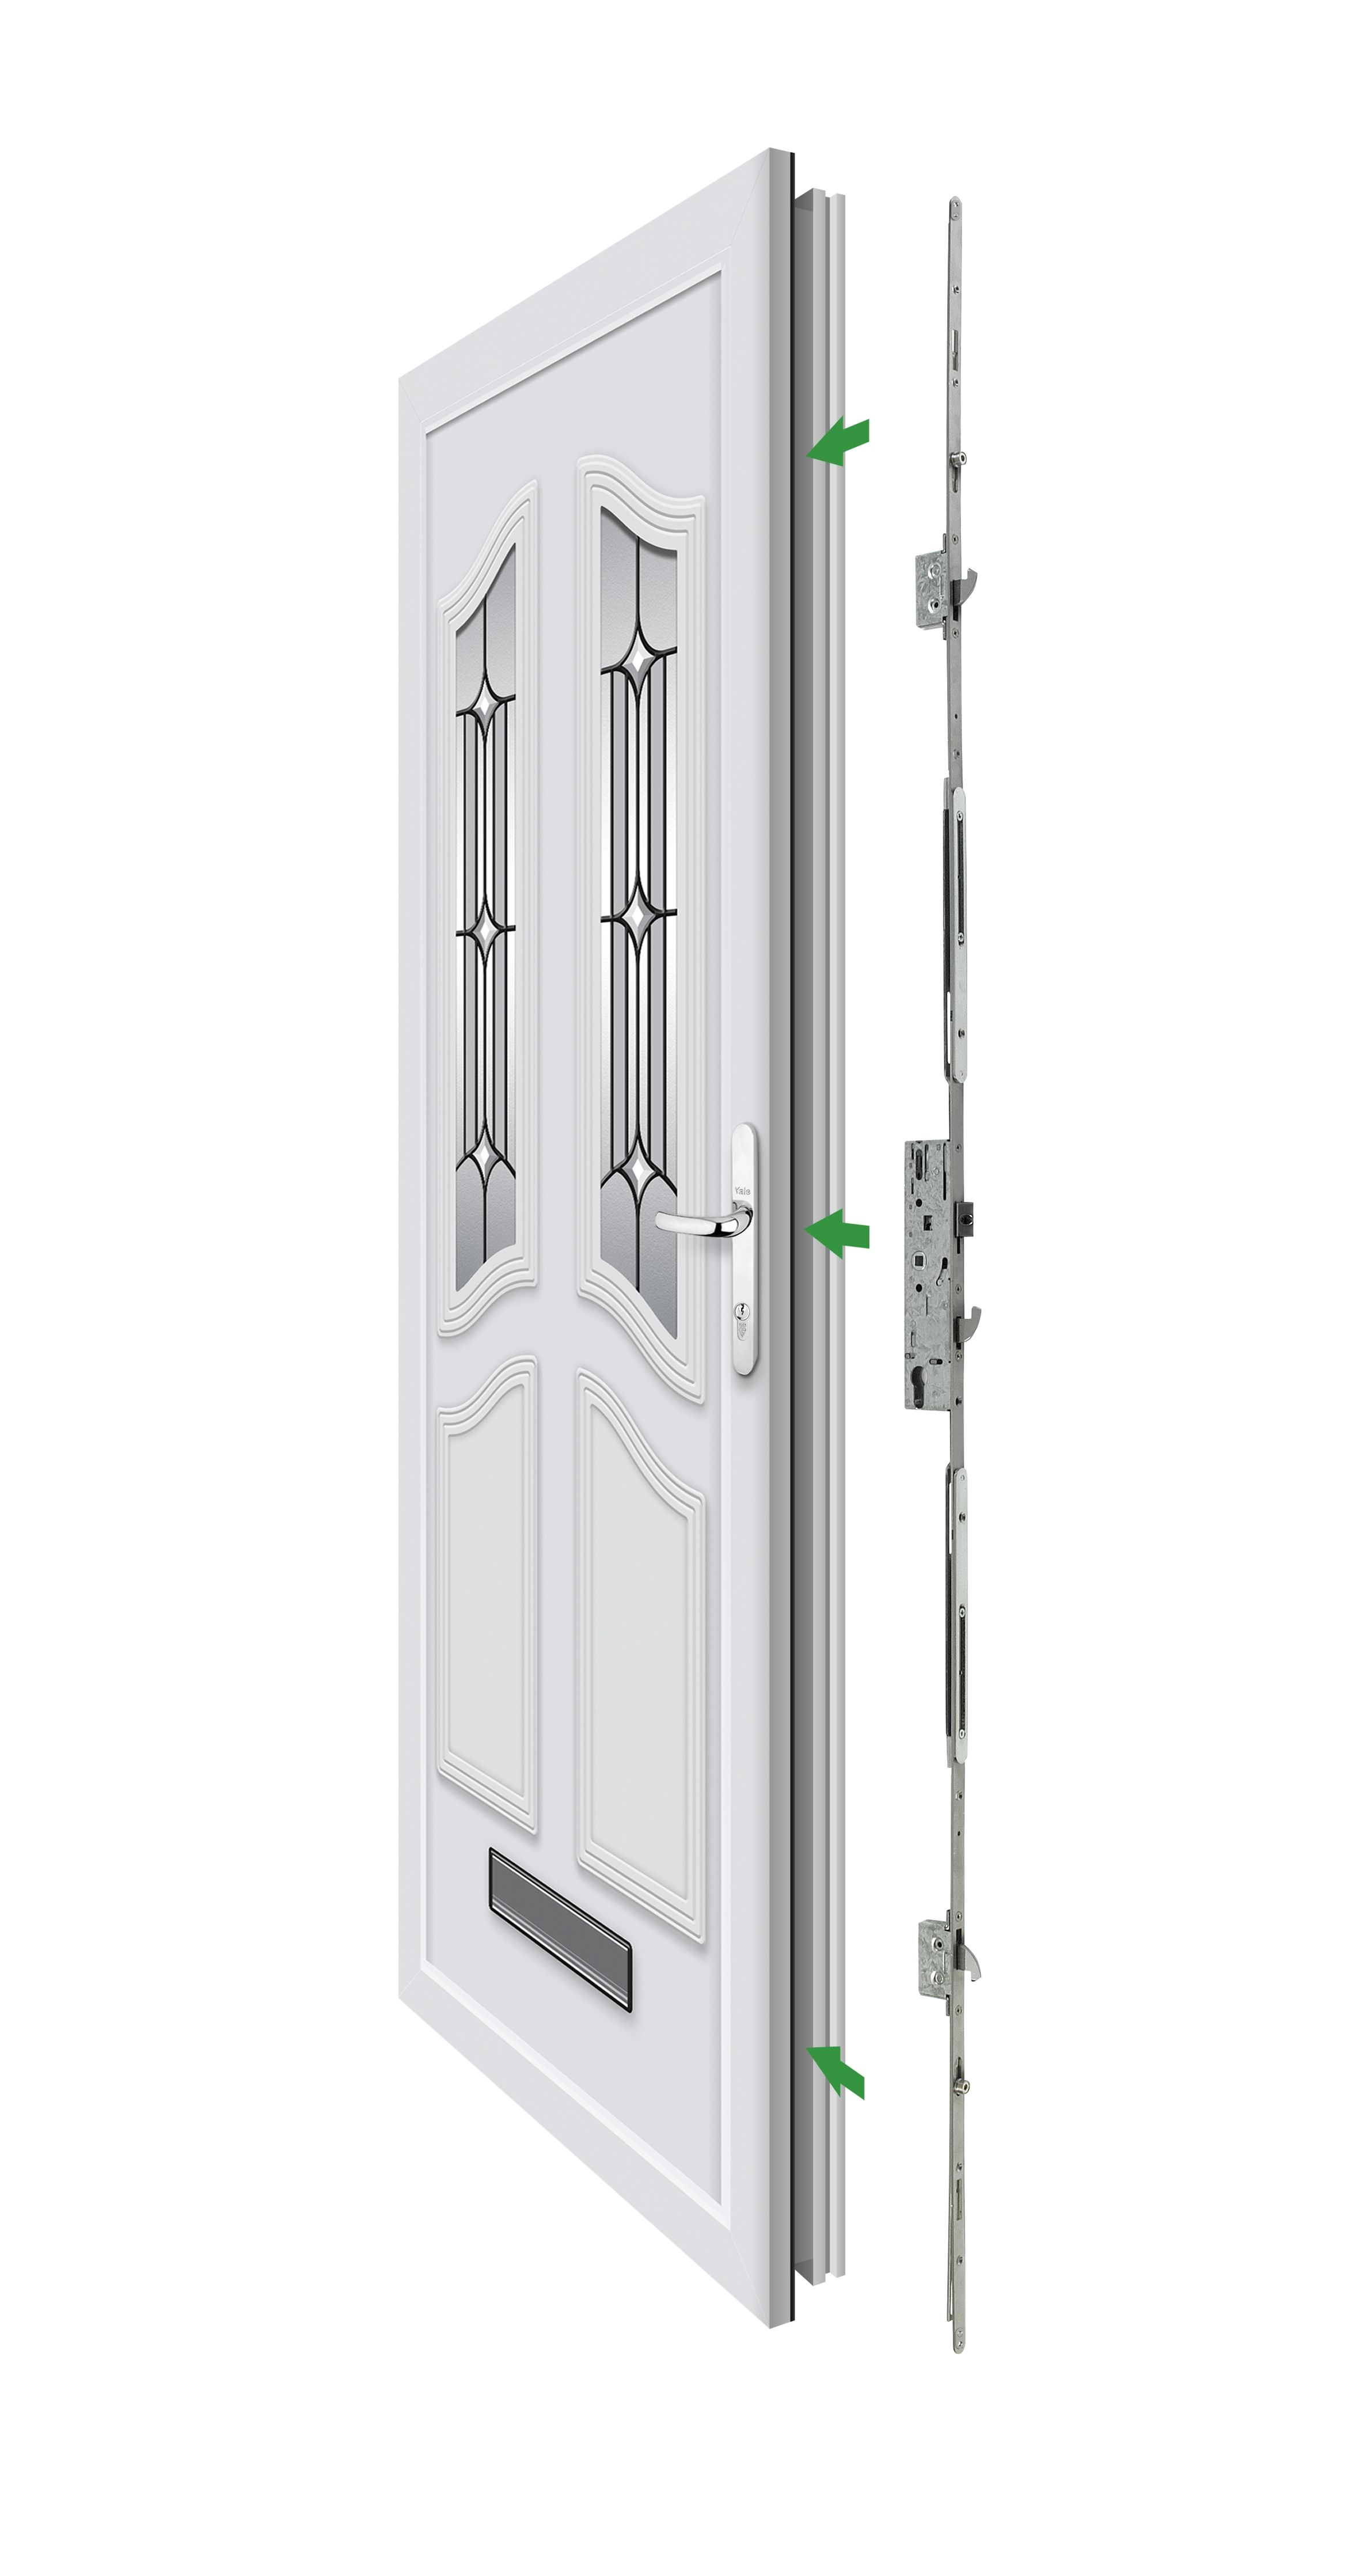 If you think your multipoint lock might need replacing before you go on your hols, check out our new Doormaster™ range. It allows you to replace your lock without having to go to the hassle and expense of replacing the entire door!